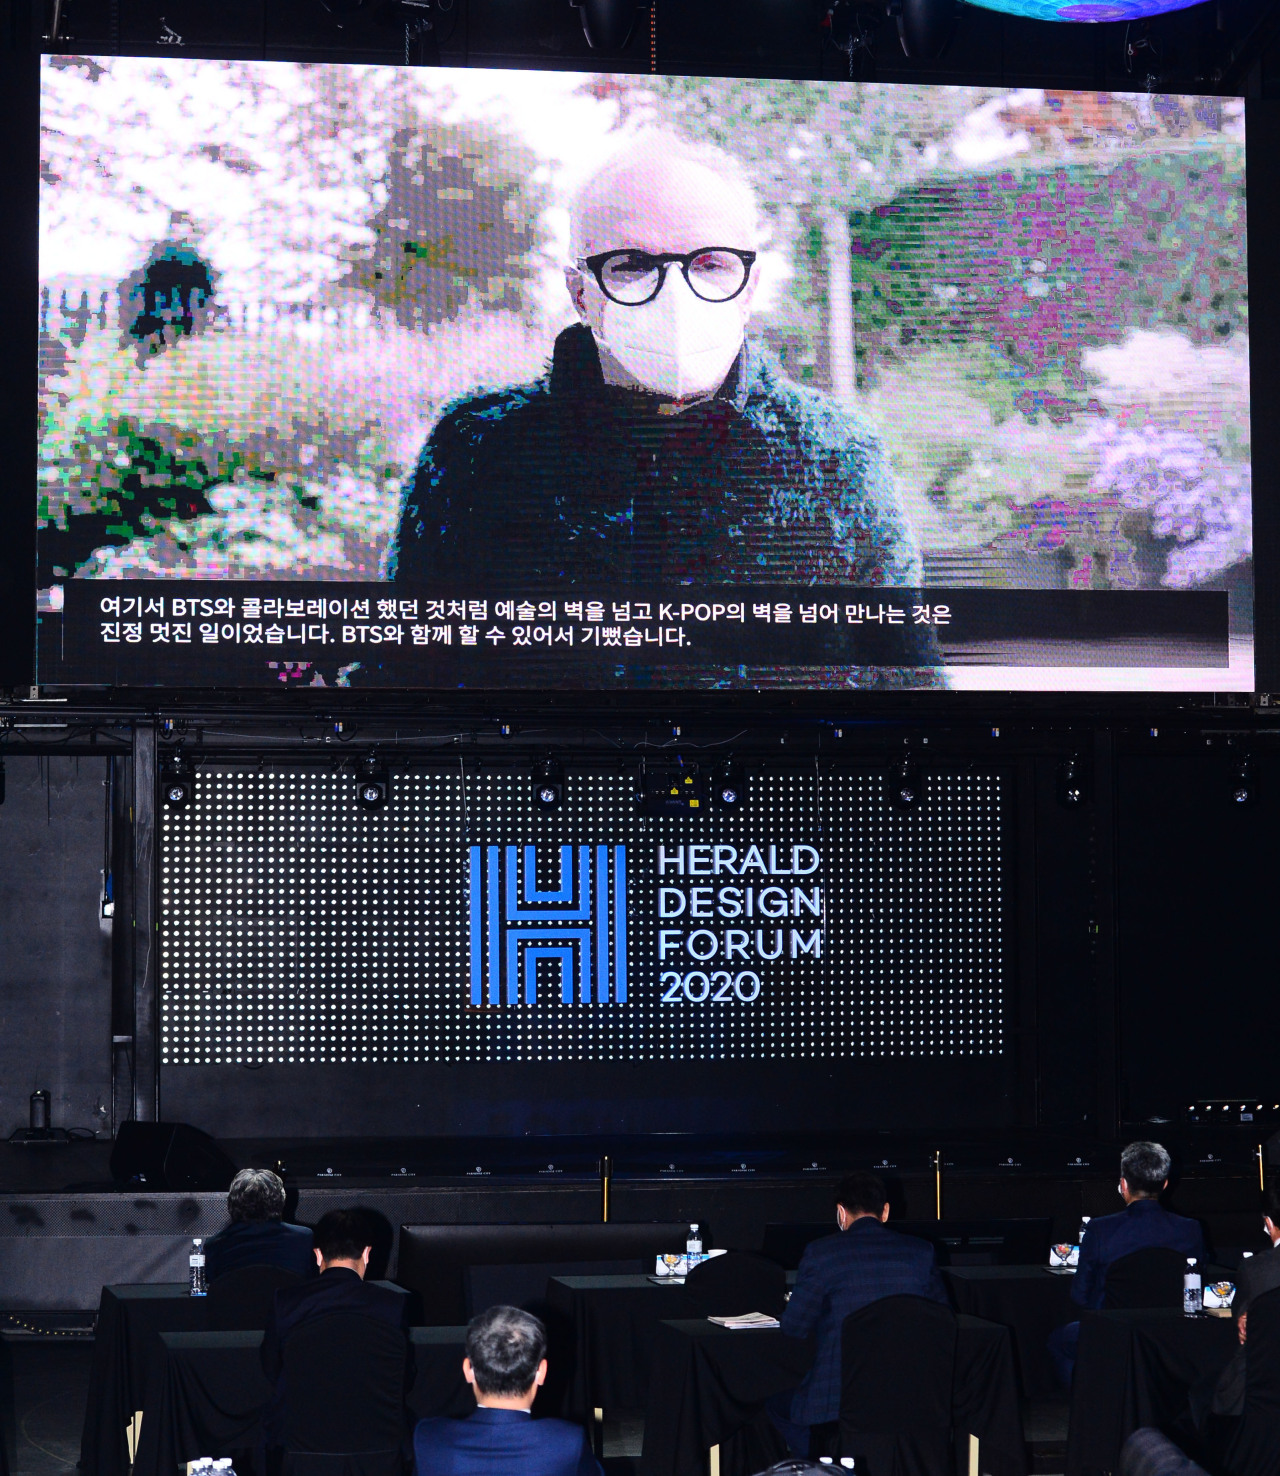 Hans Ulrich Obrist gives an online lecture at the Herald Design Forum 2020 in Incheon on Thursday. (Park Hae-mook/The Korea Herald)